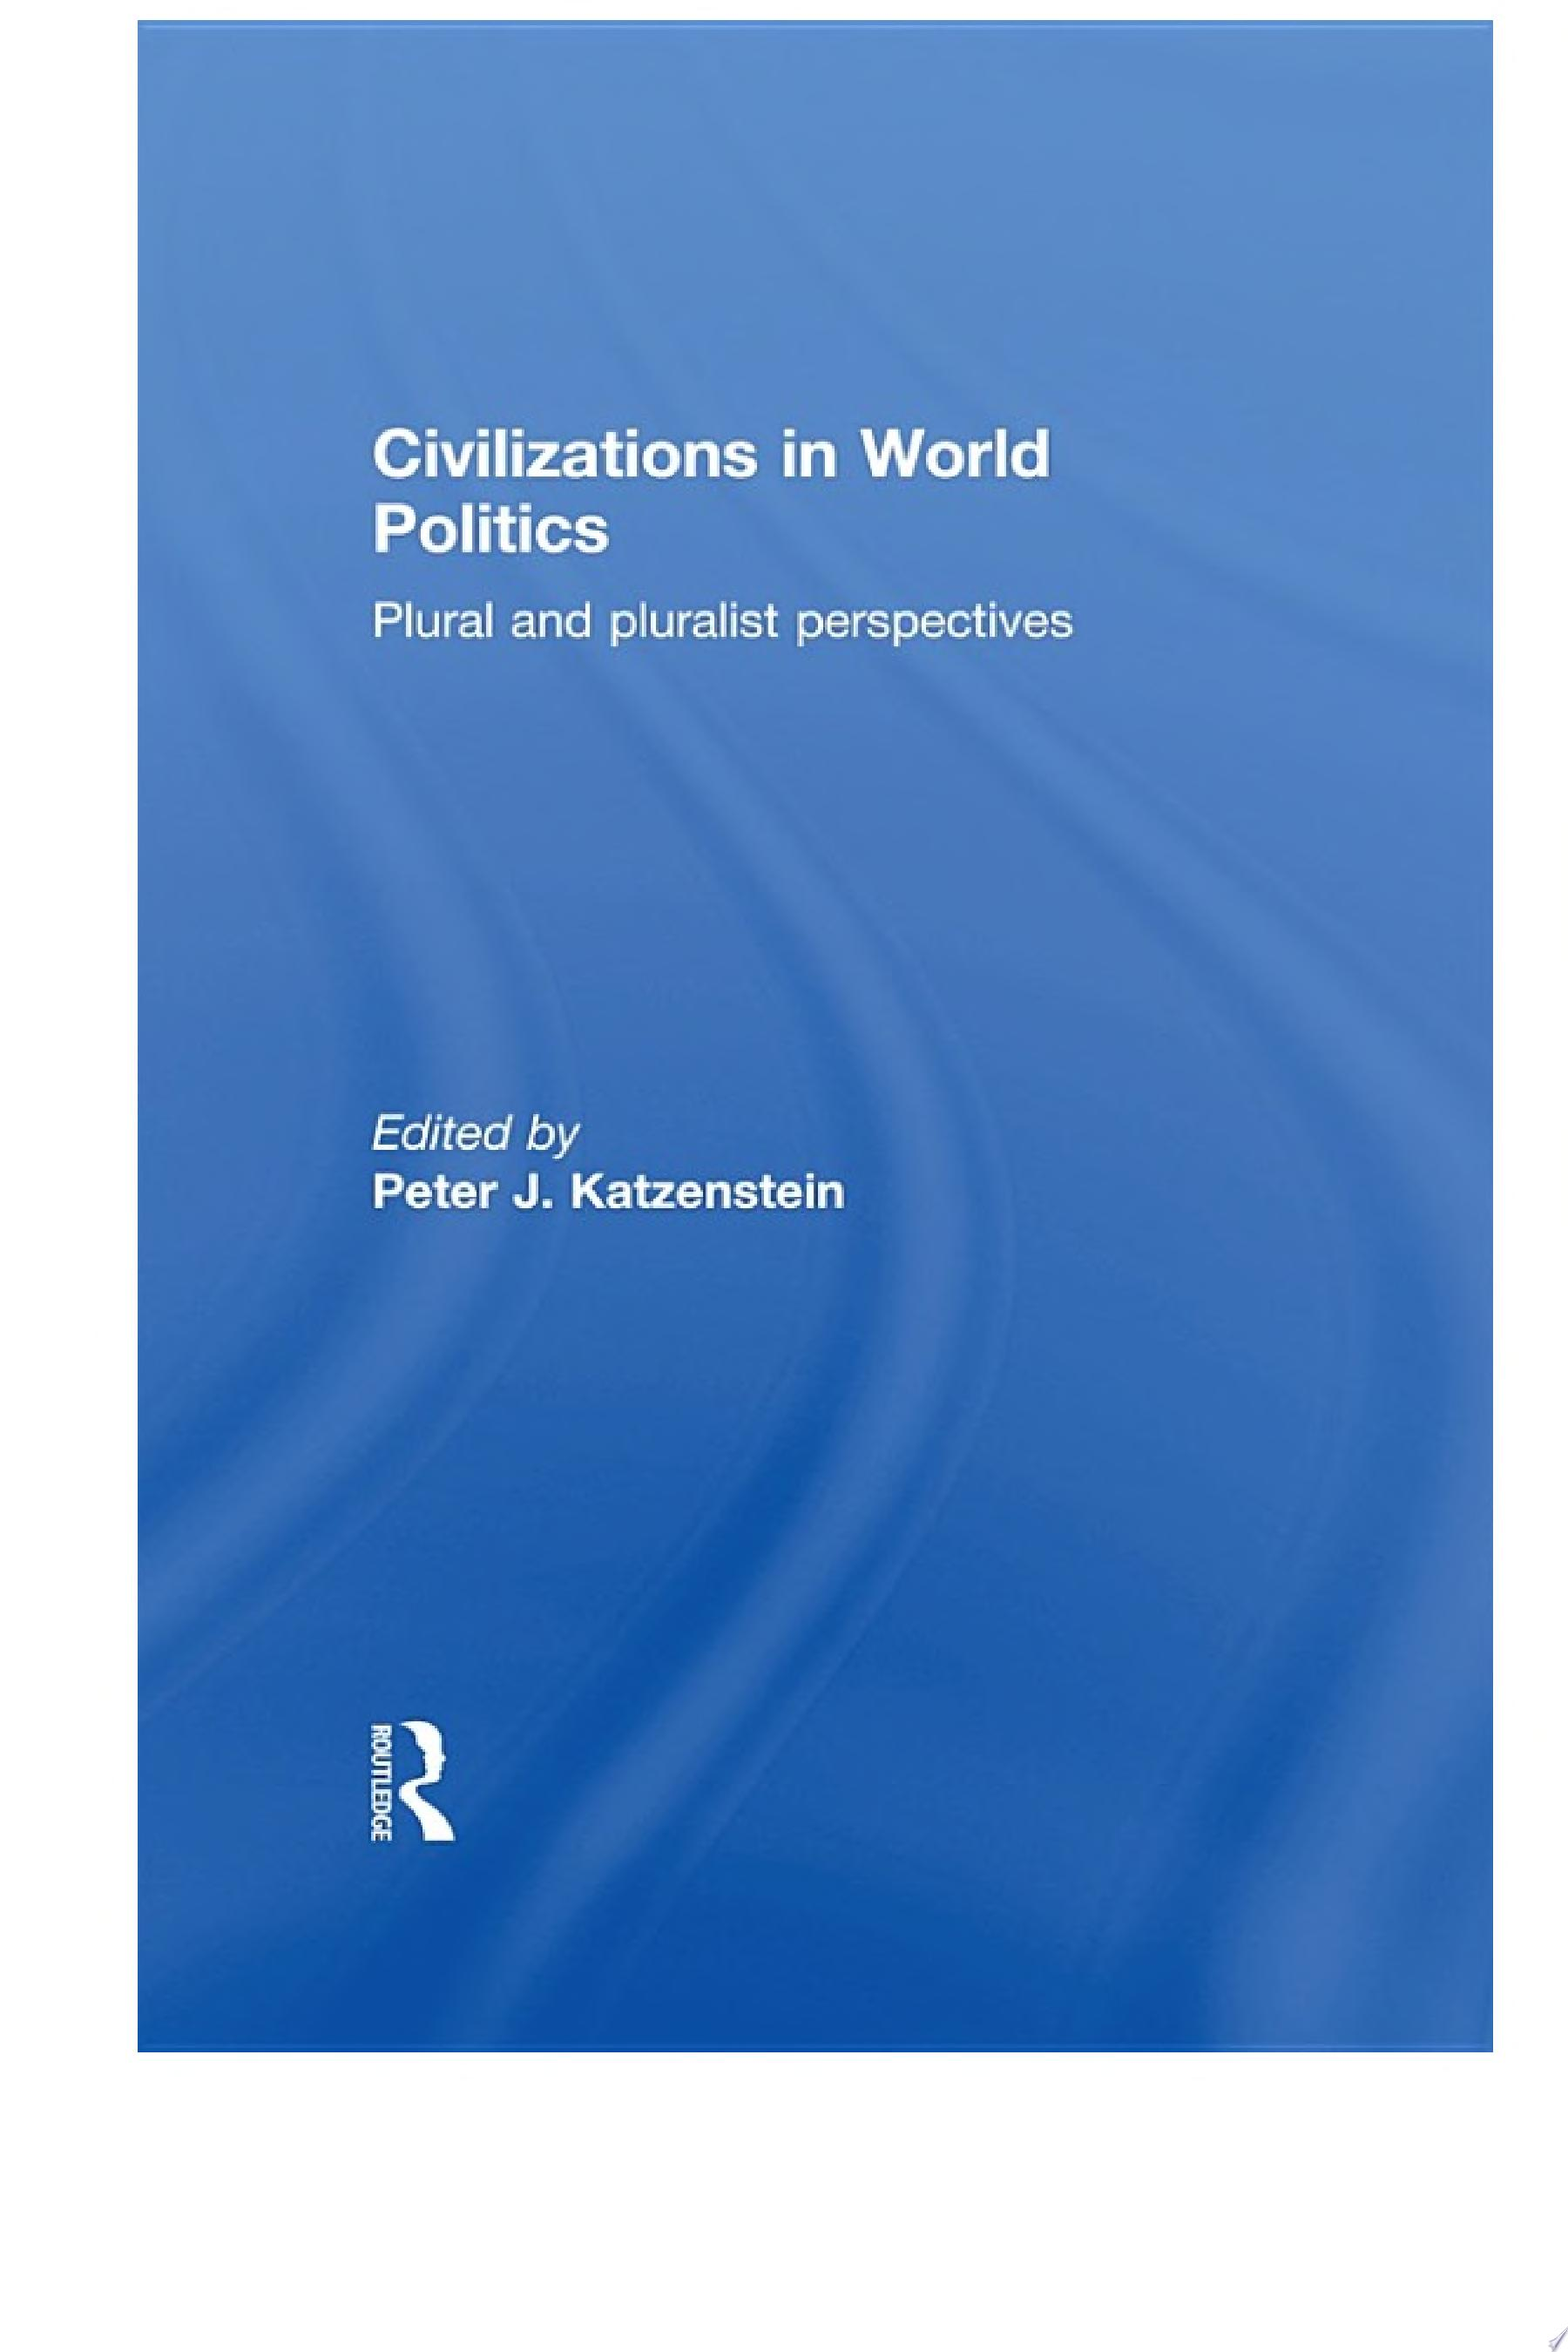 Civilizations in World Politics